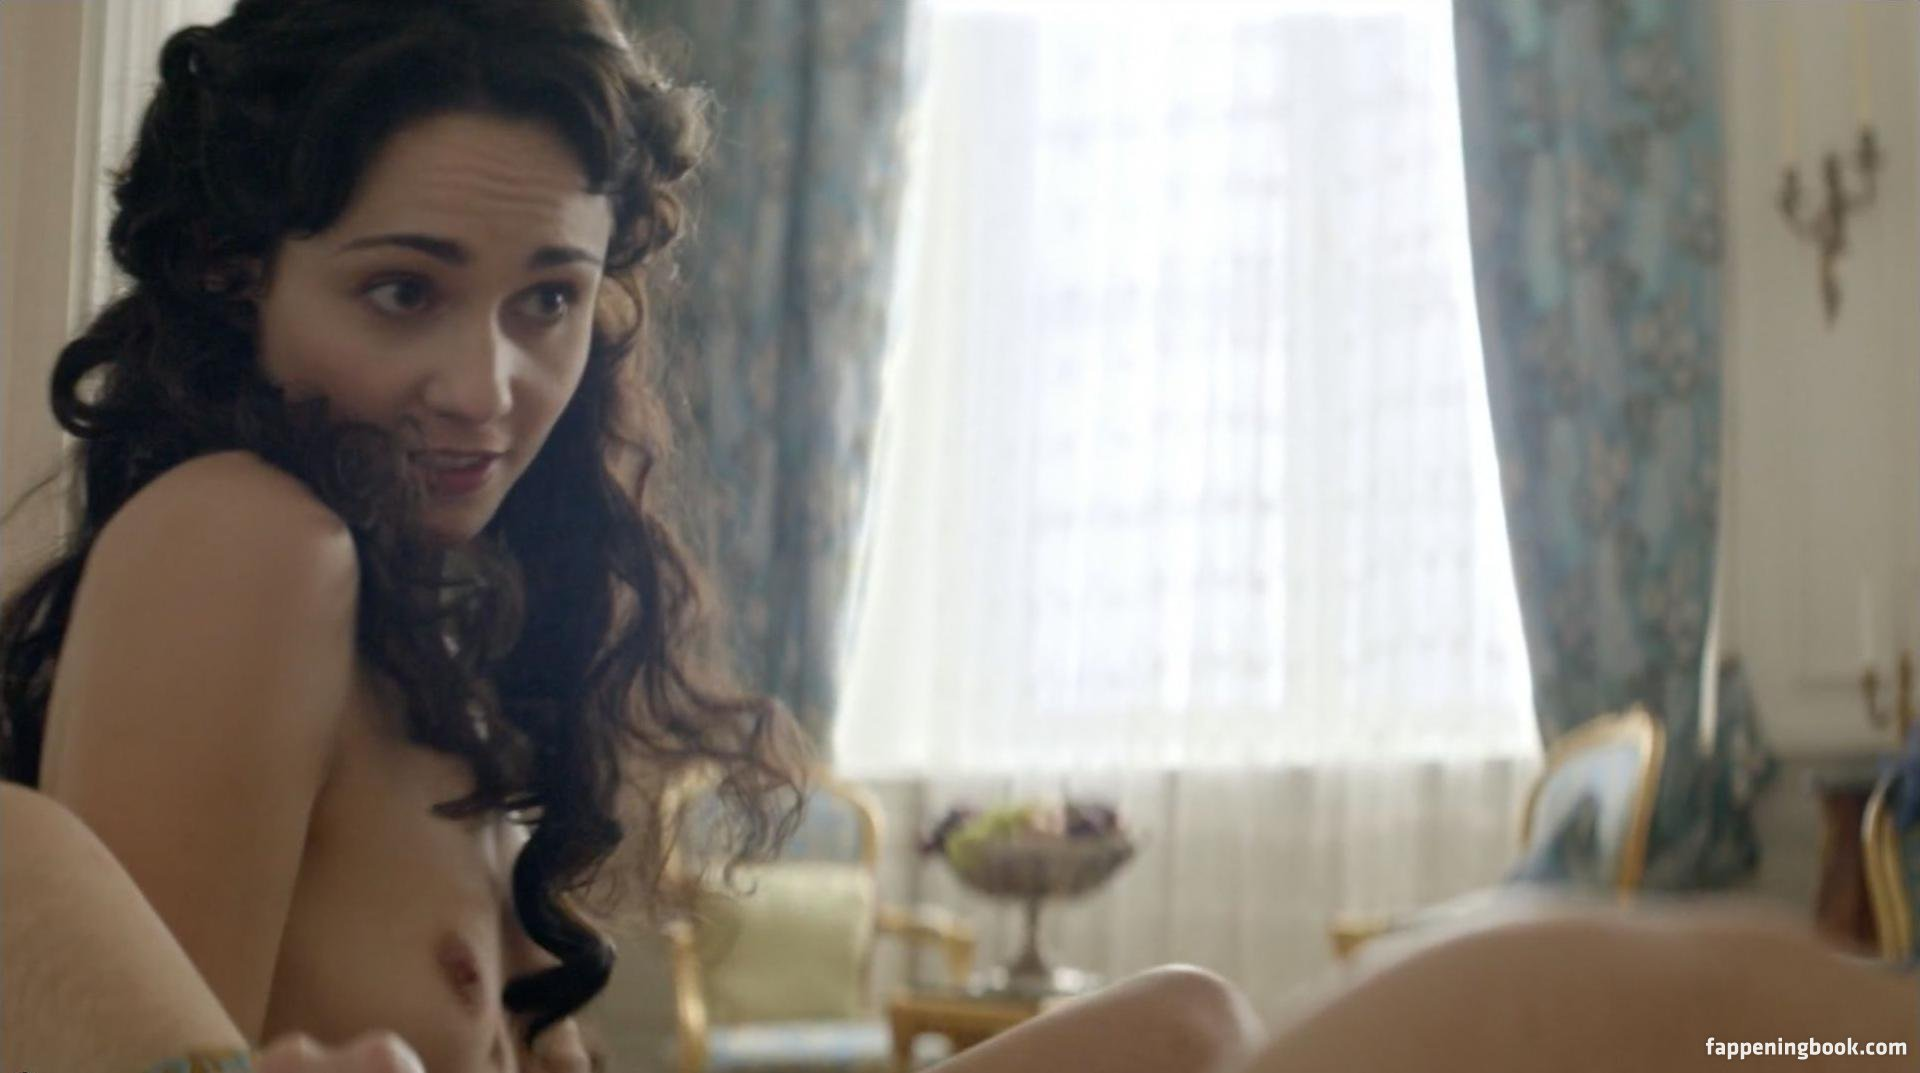 Tuppence Middleton Nude, Sexy, The Fappening, Uncensored ...